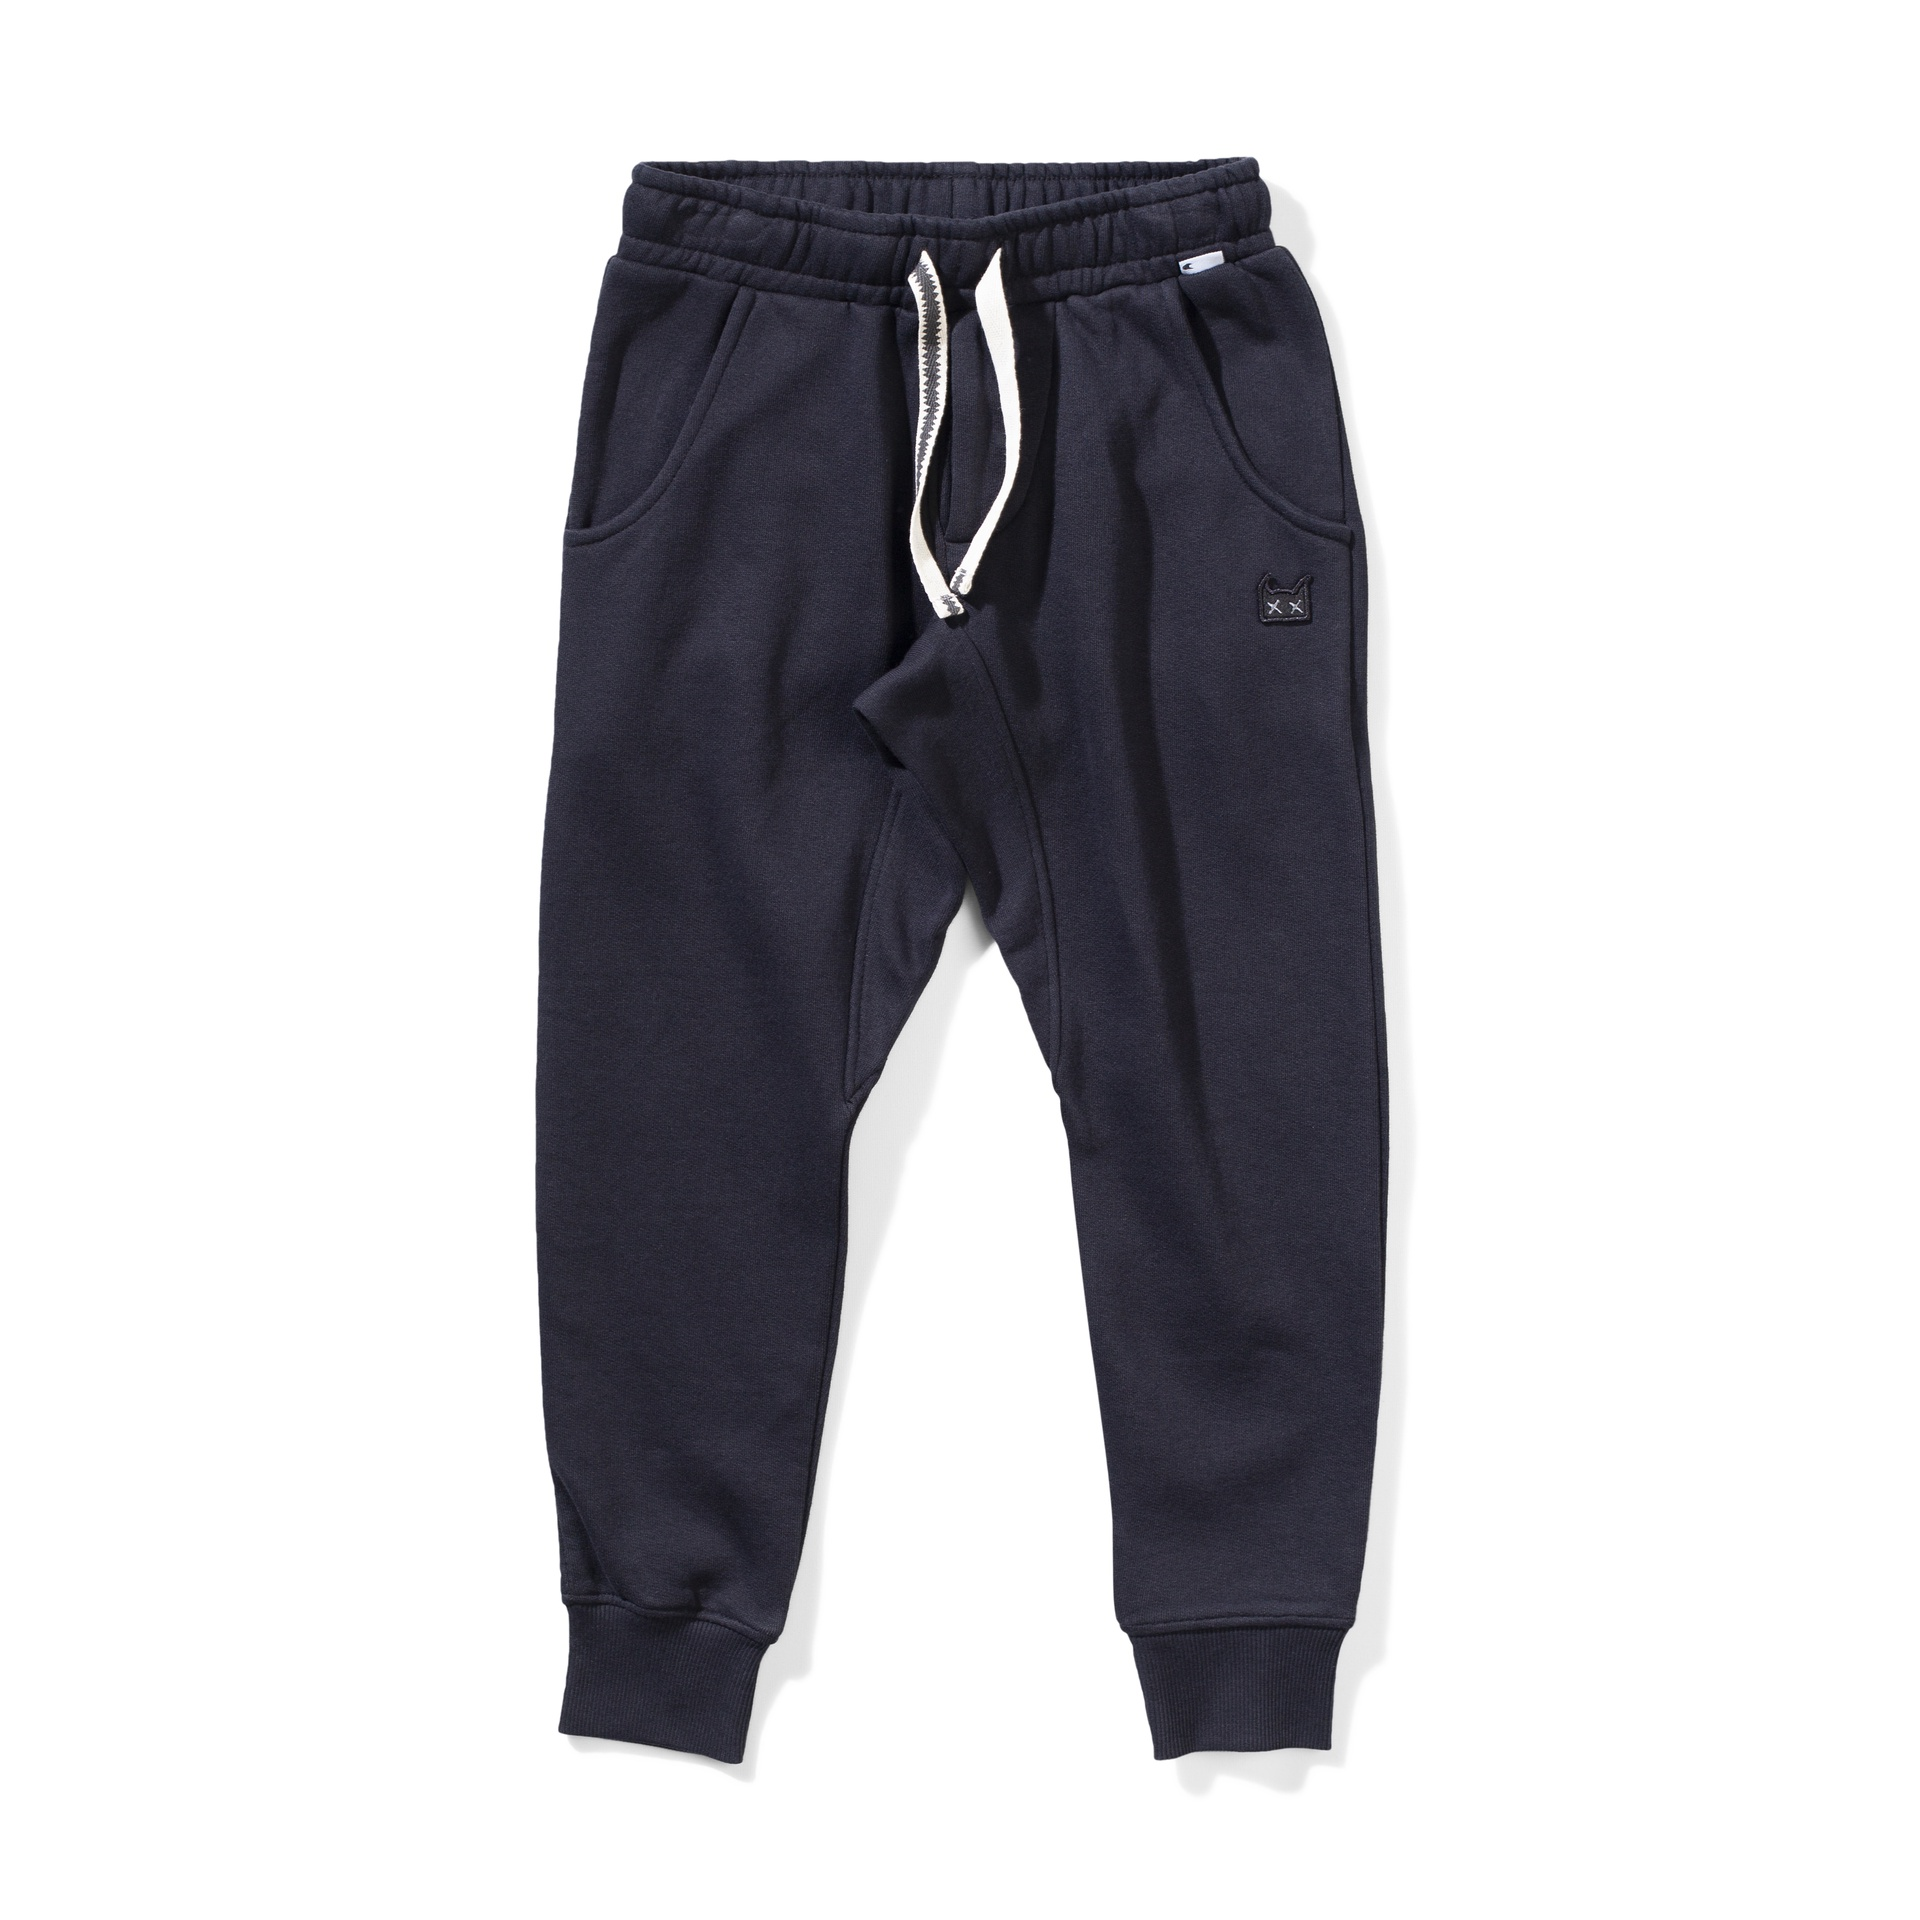 Munster Daynight 2 Pant (pigment black)